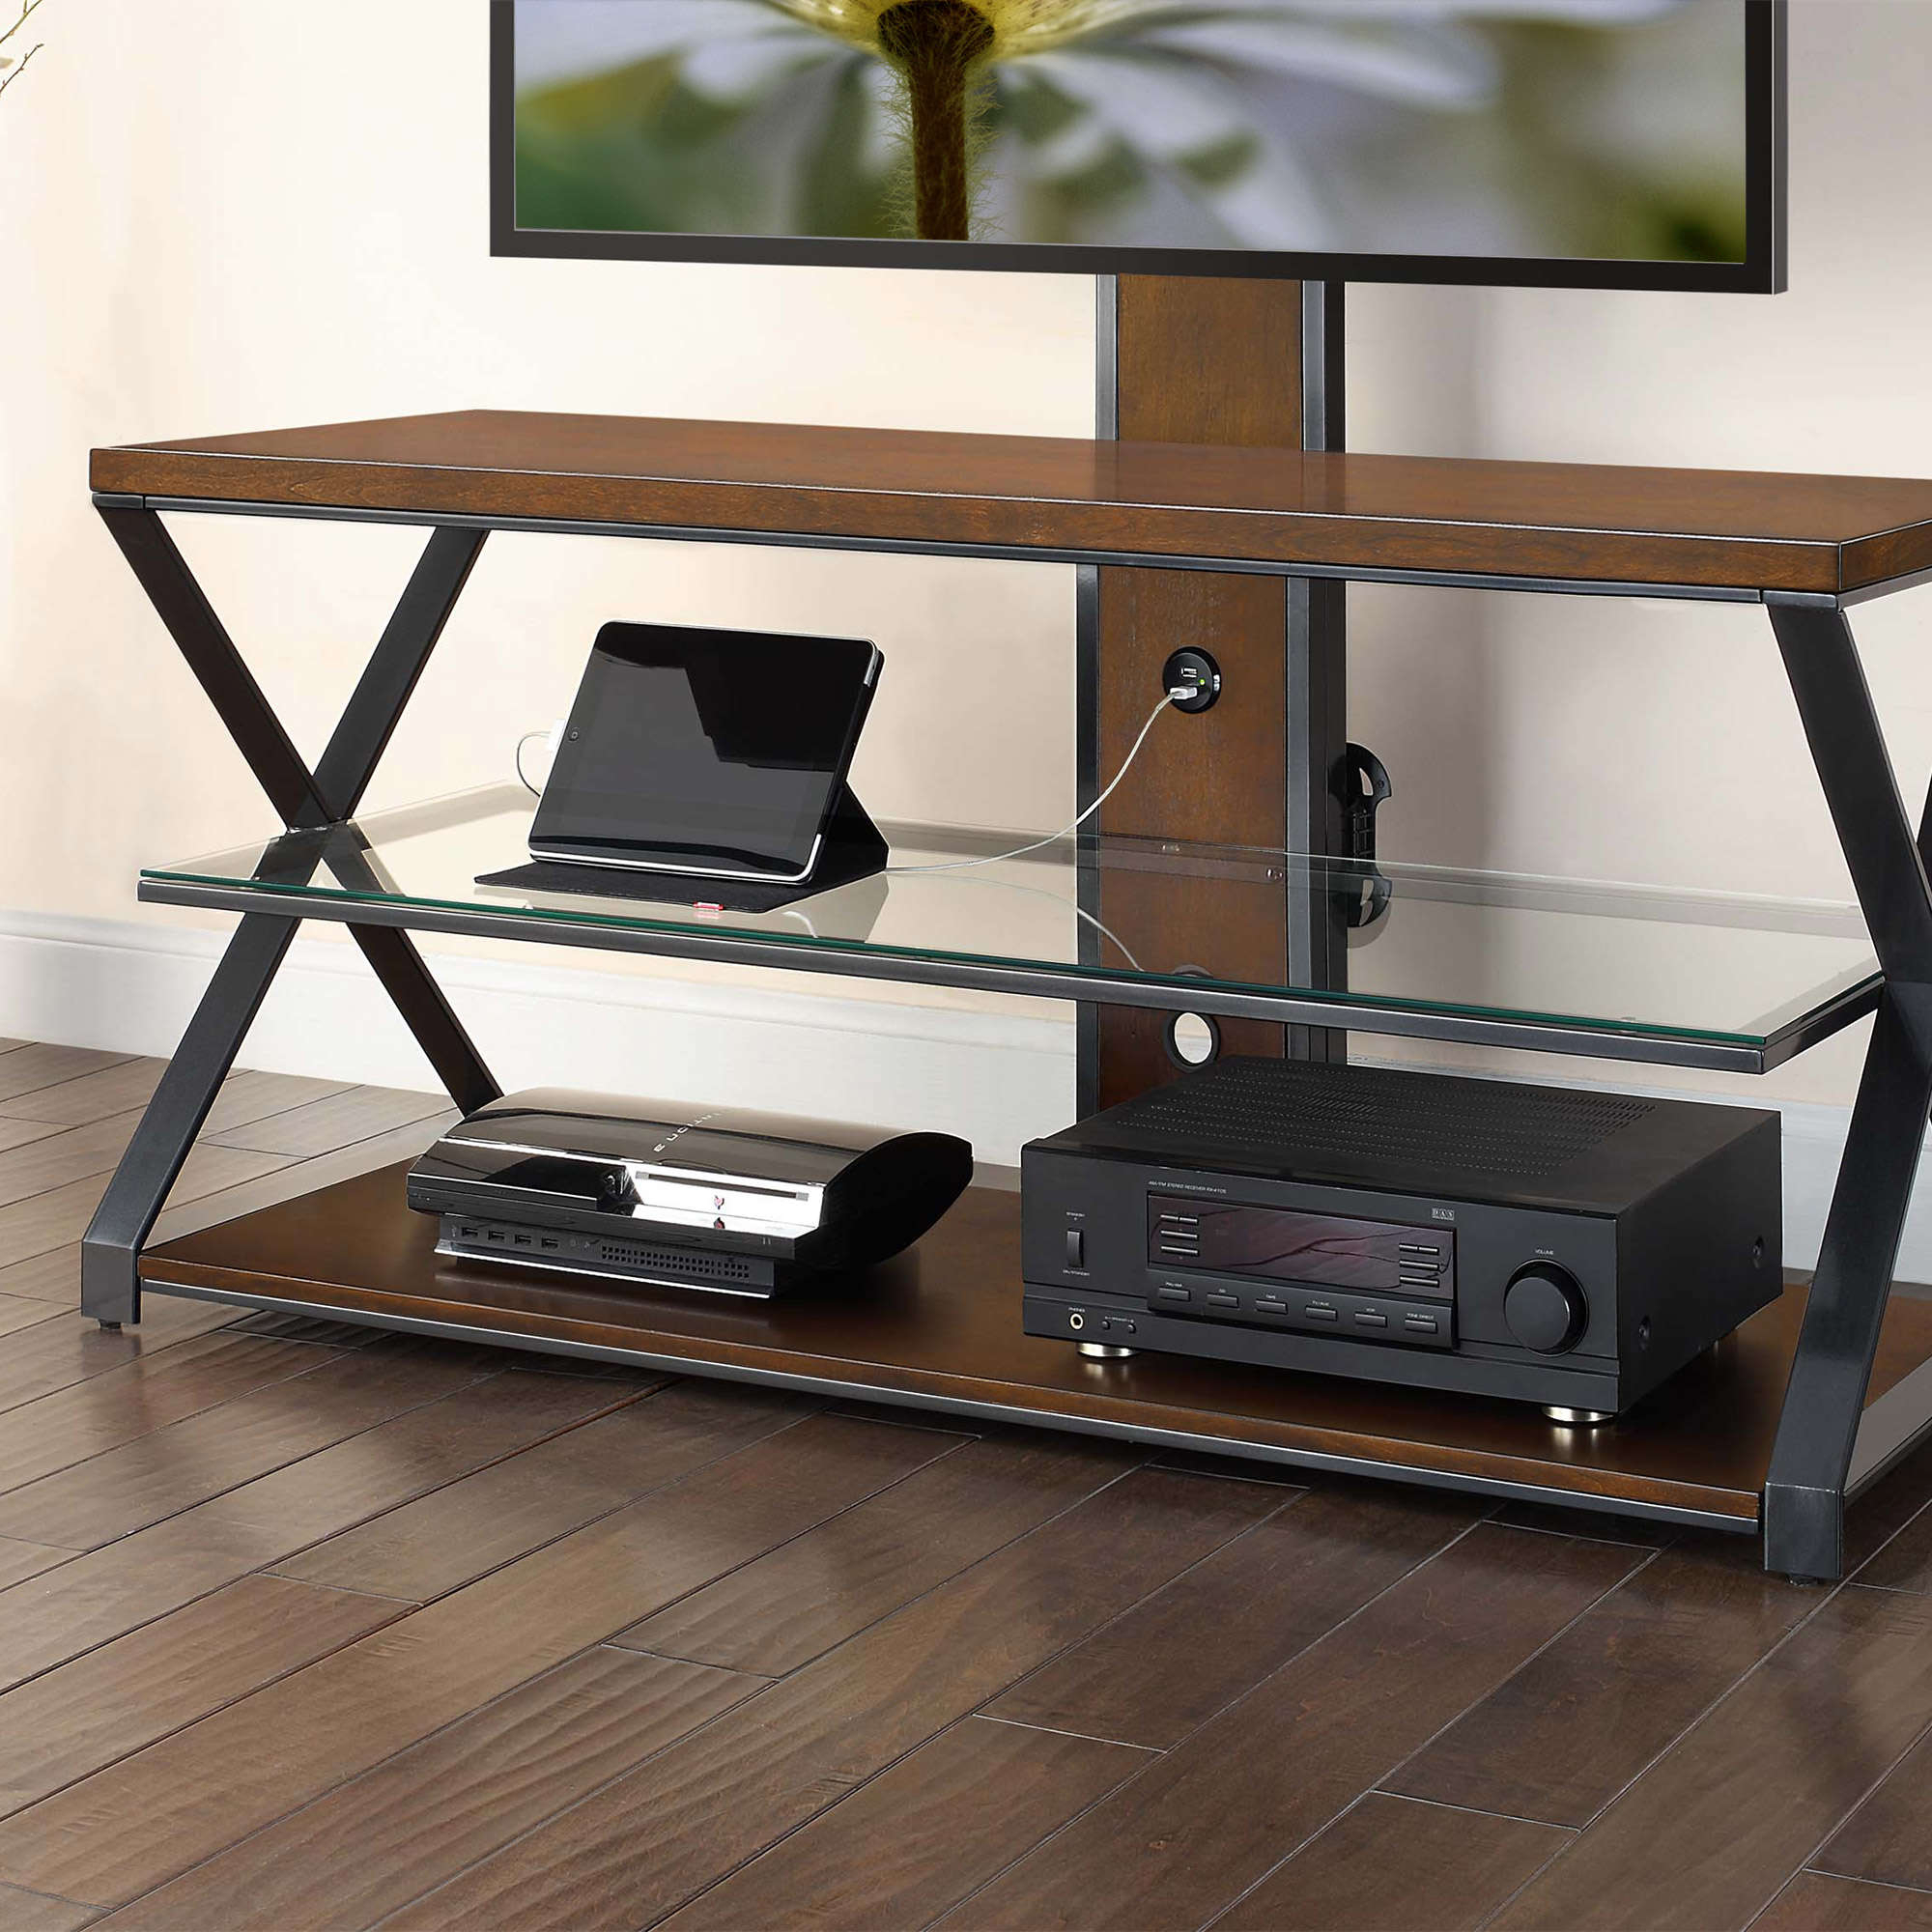 "Jaxon 3 In 1 Cognac Tv Stand For Tvs Up To 70"" – Walmart Intended For Jaxon 71 Inch Tv Stands (View 4 of 30)"